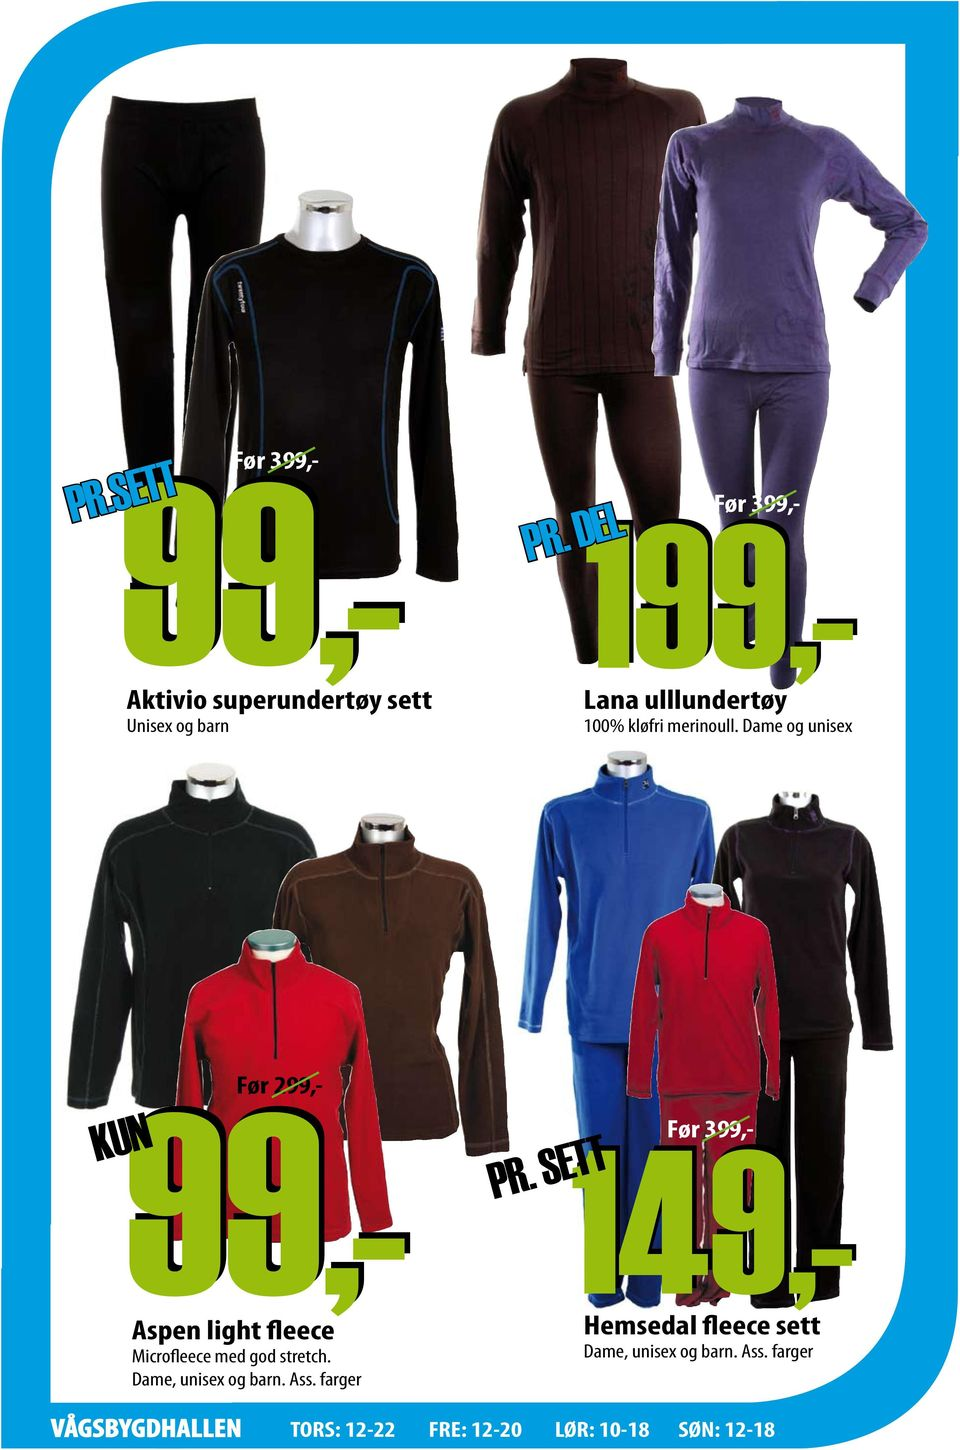 DEL Før 2 Aspen light fleece Microfleece med god stretch.